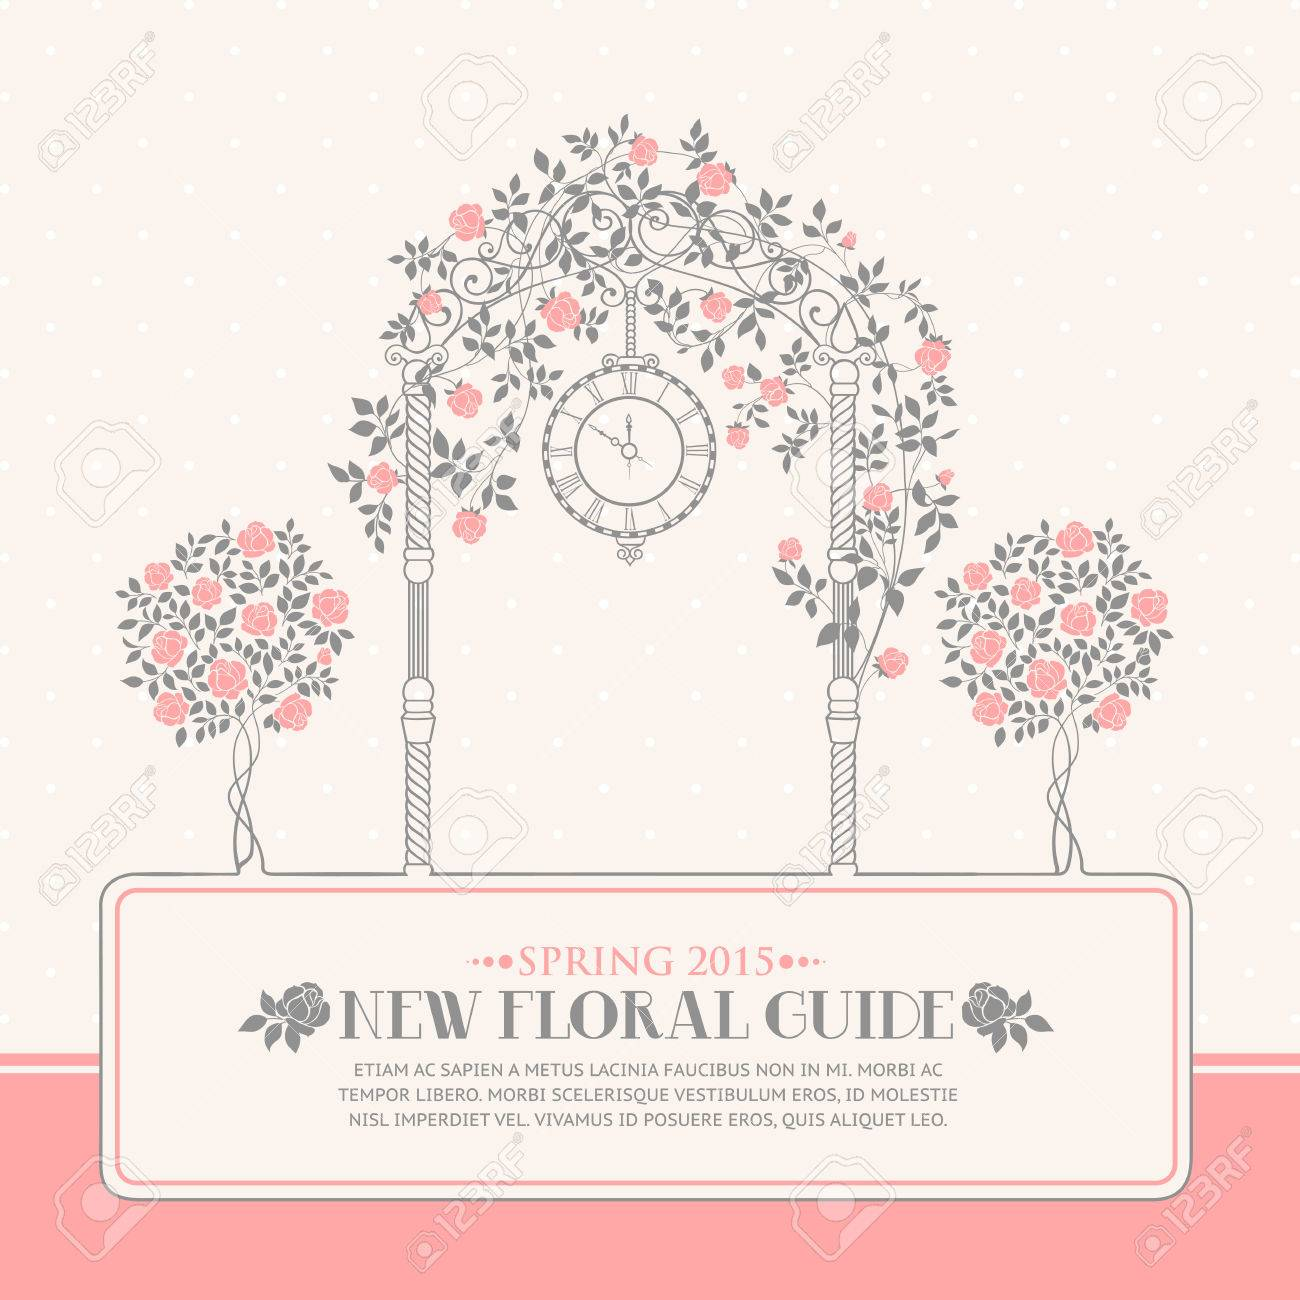 rose garden with trees and arch flowers text template plase